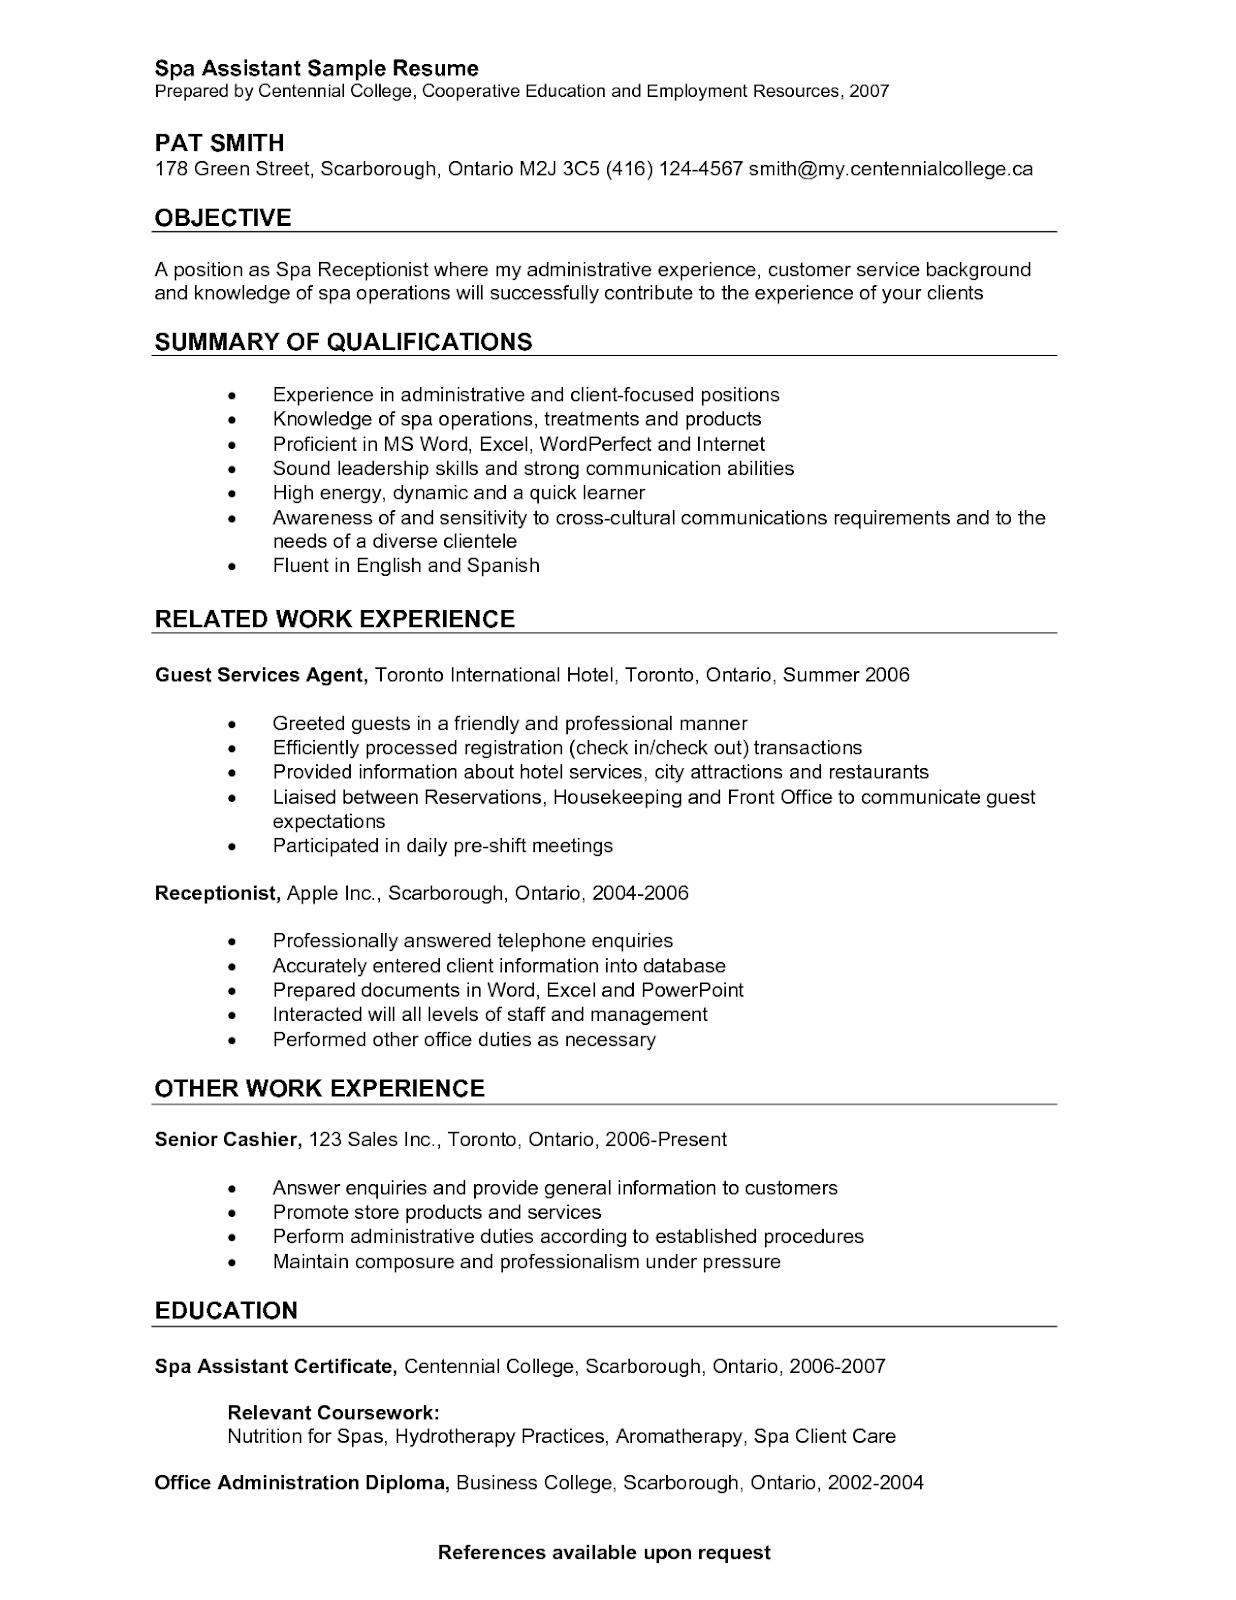 Personal Assistant Resume Samples, Personal Assistant